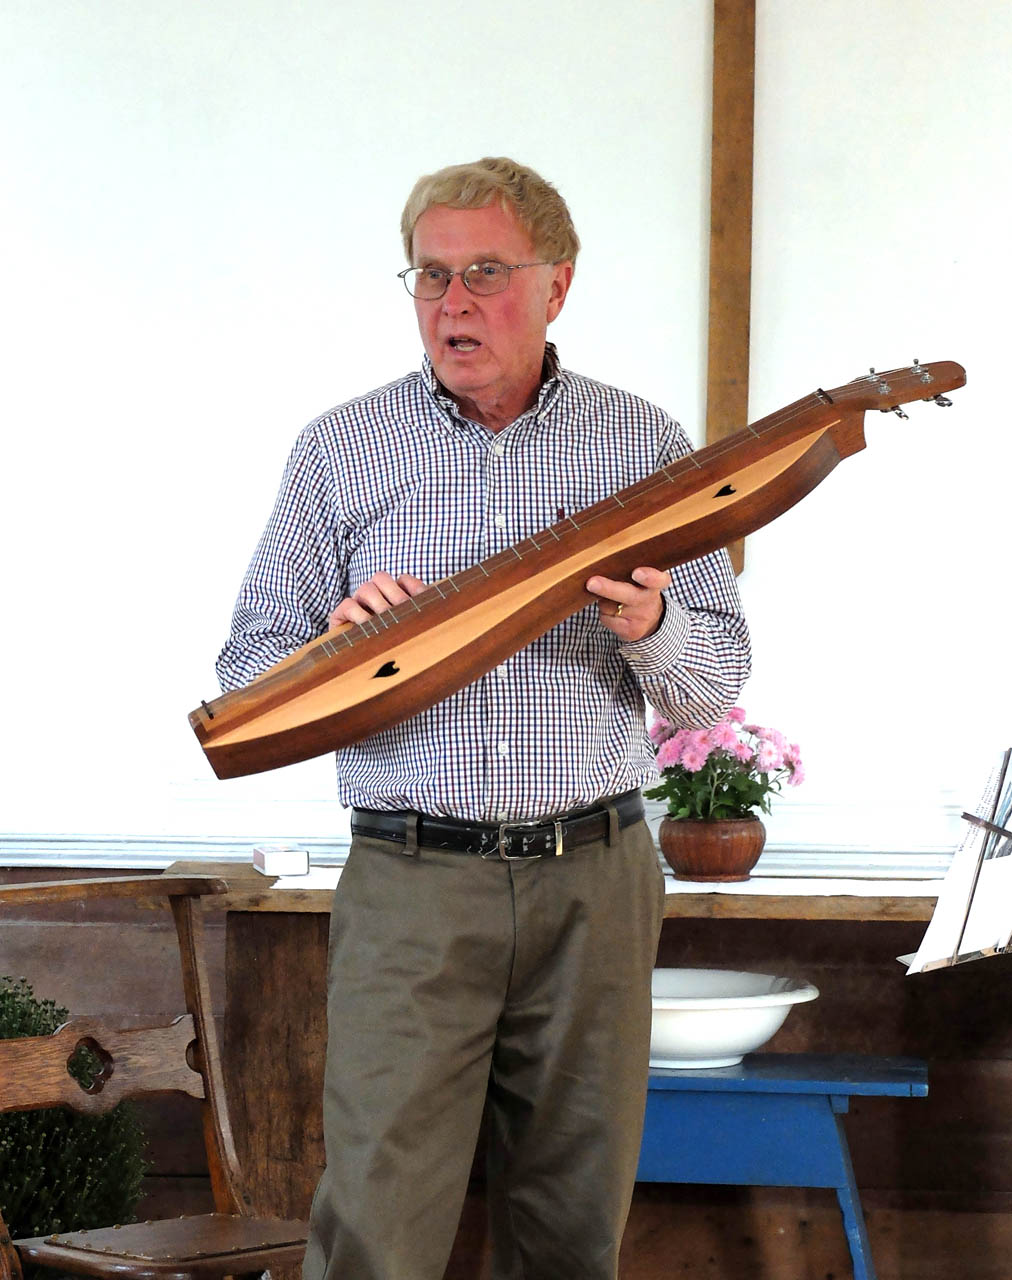 Photo of Rev. Froemming holding a dulcimer